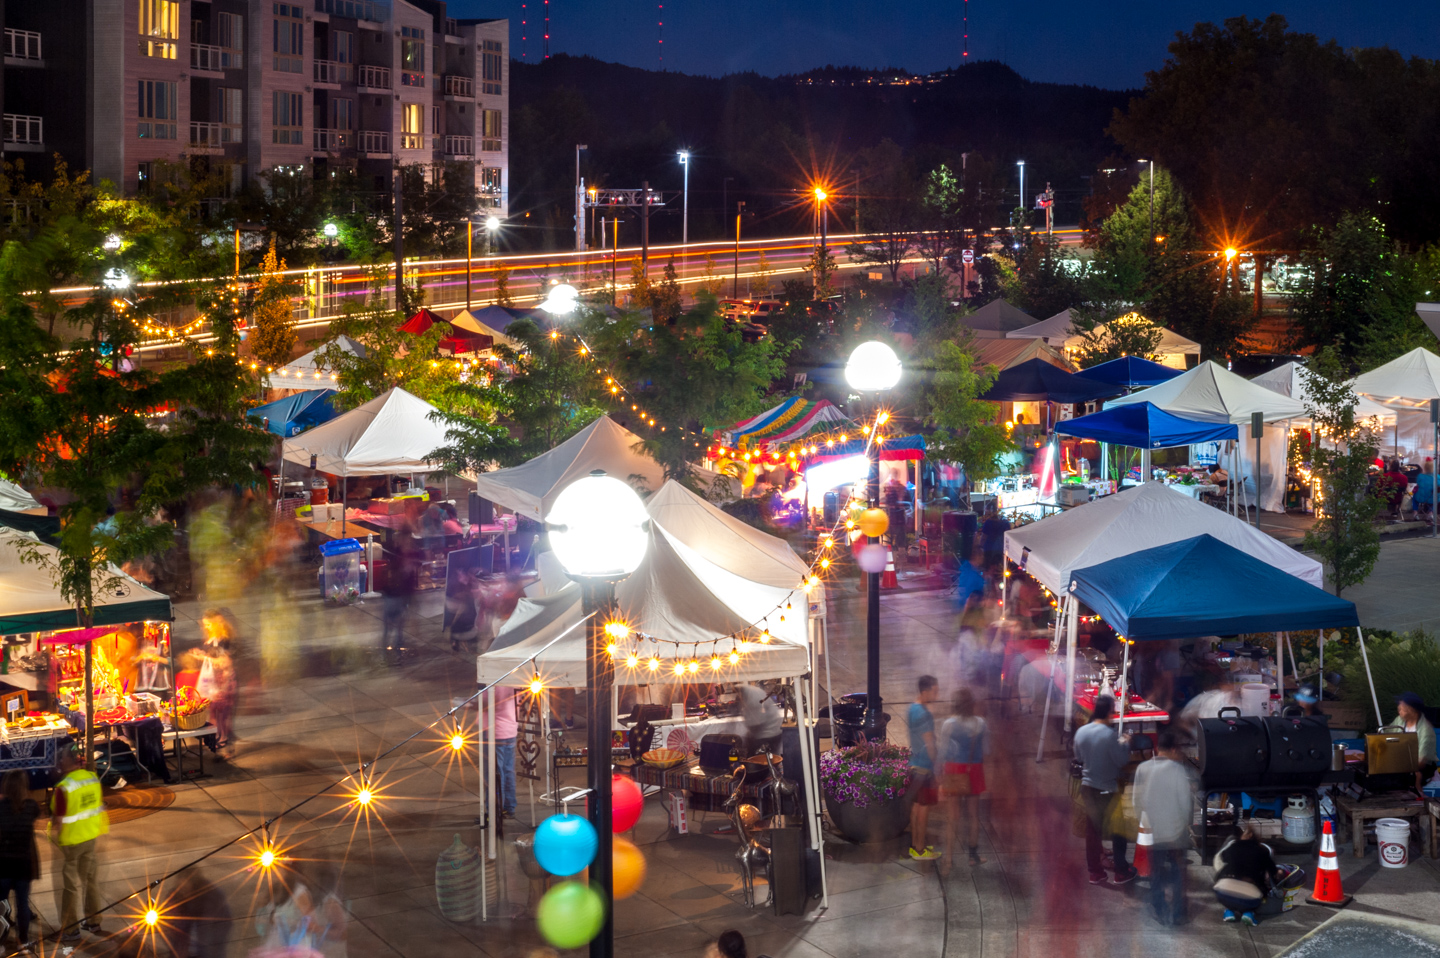 Beaverton Night Market